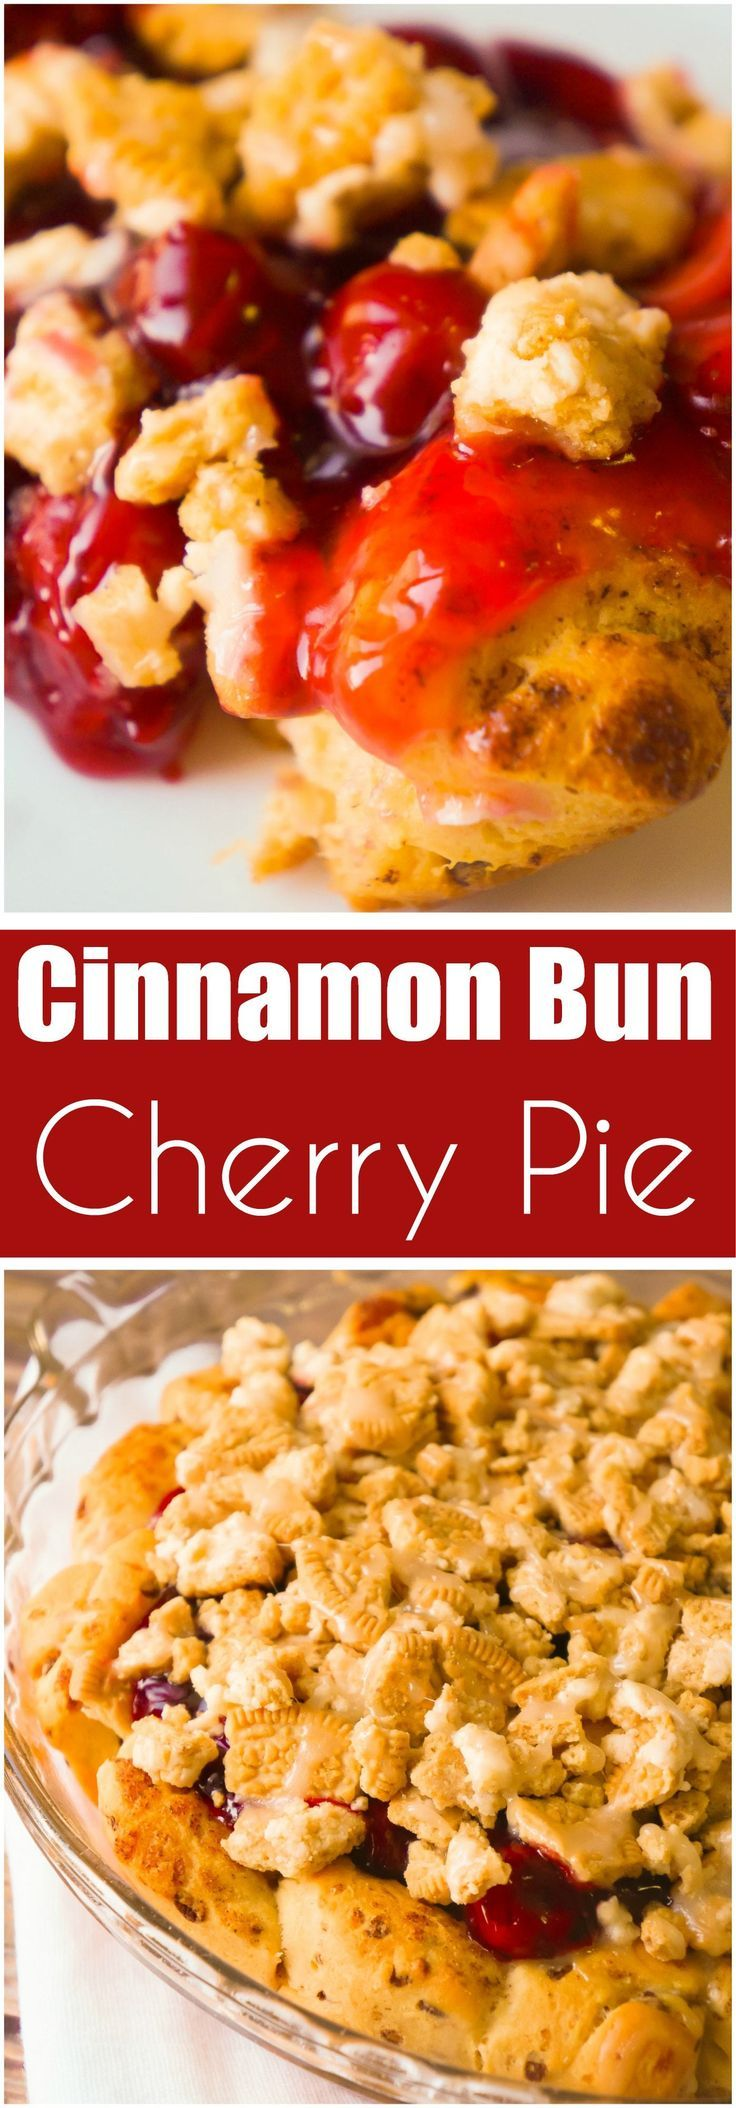 Cinnamon Bun Cherry Pie is an easy pie recipe using Pillsbury Cinnamon Rolls and canned cherry pie filling. This cherry pie is topped with crumbled Cinnamon Bun Oreos.